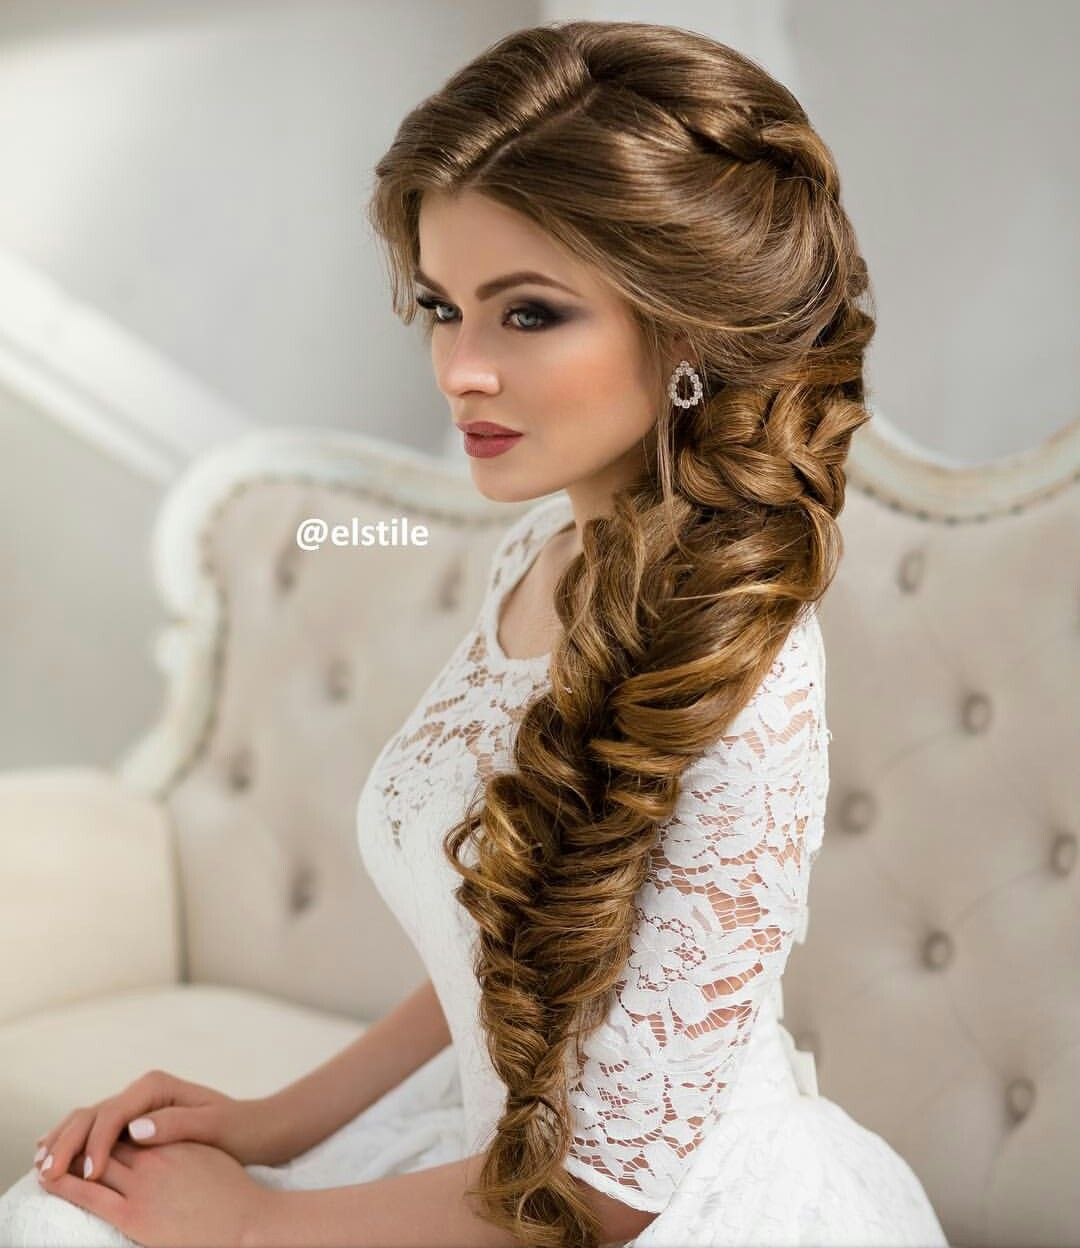 Hairstyles For Women Long Hair Half Up Half Down Long Bridal Hairstyle Via Elstile Minnesota